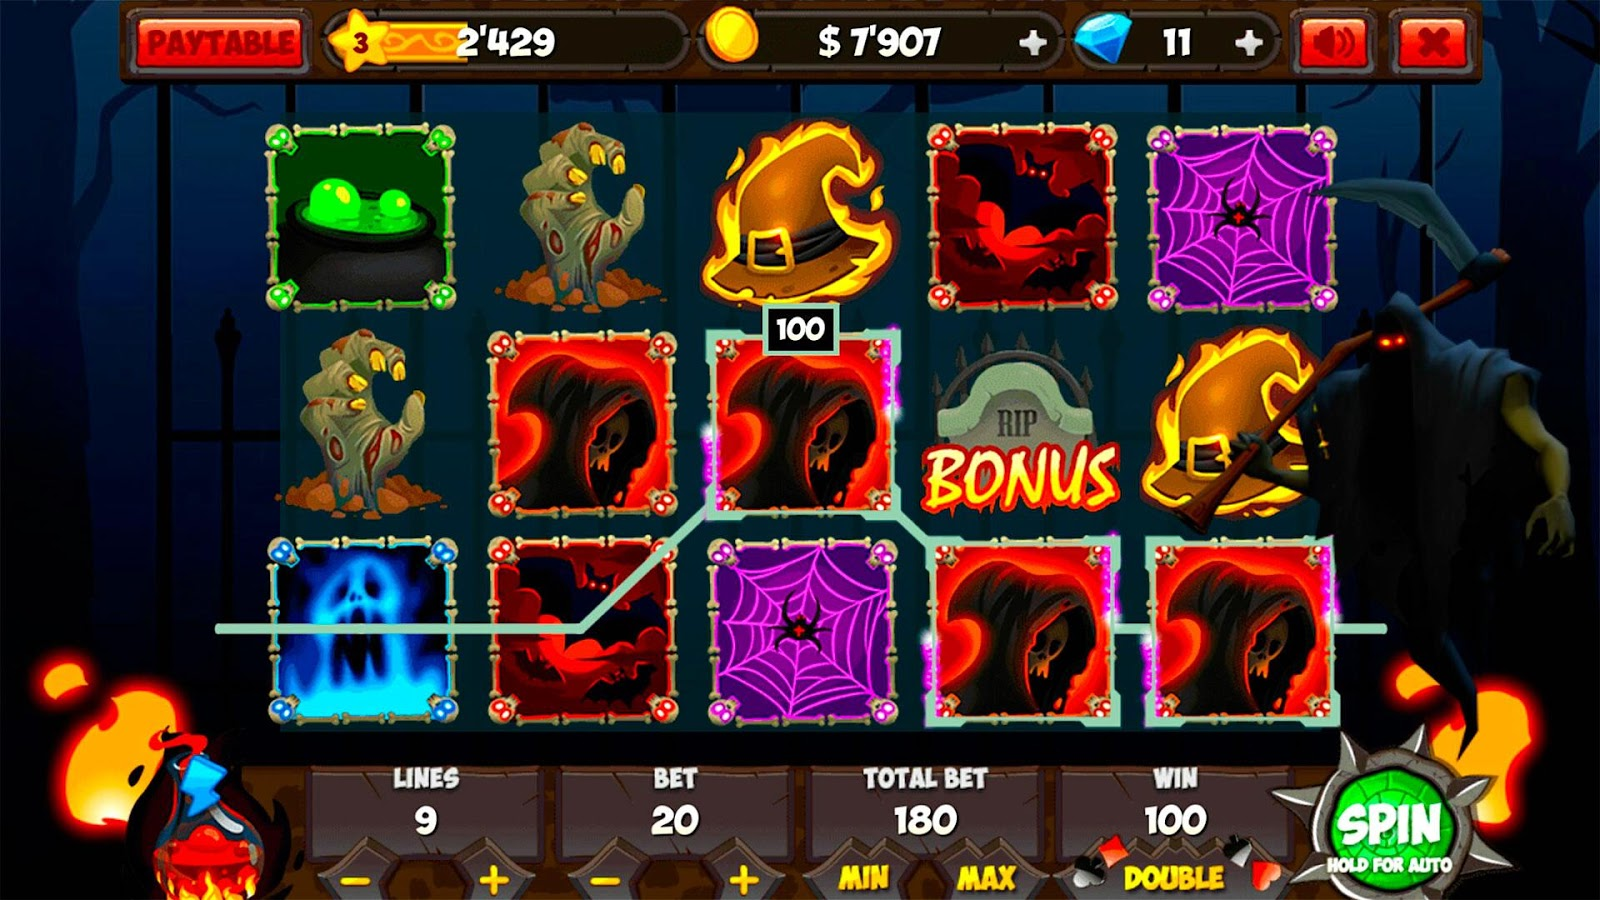 slots halloween gratis - plug into expansion slots on the motherboard